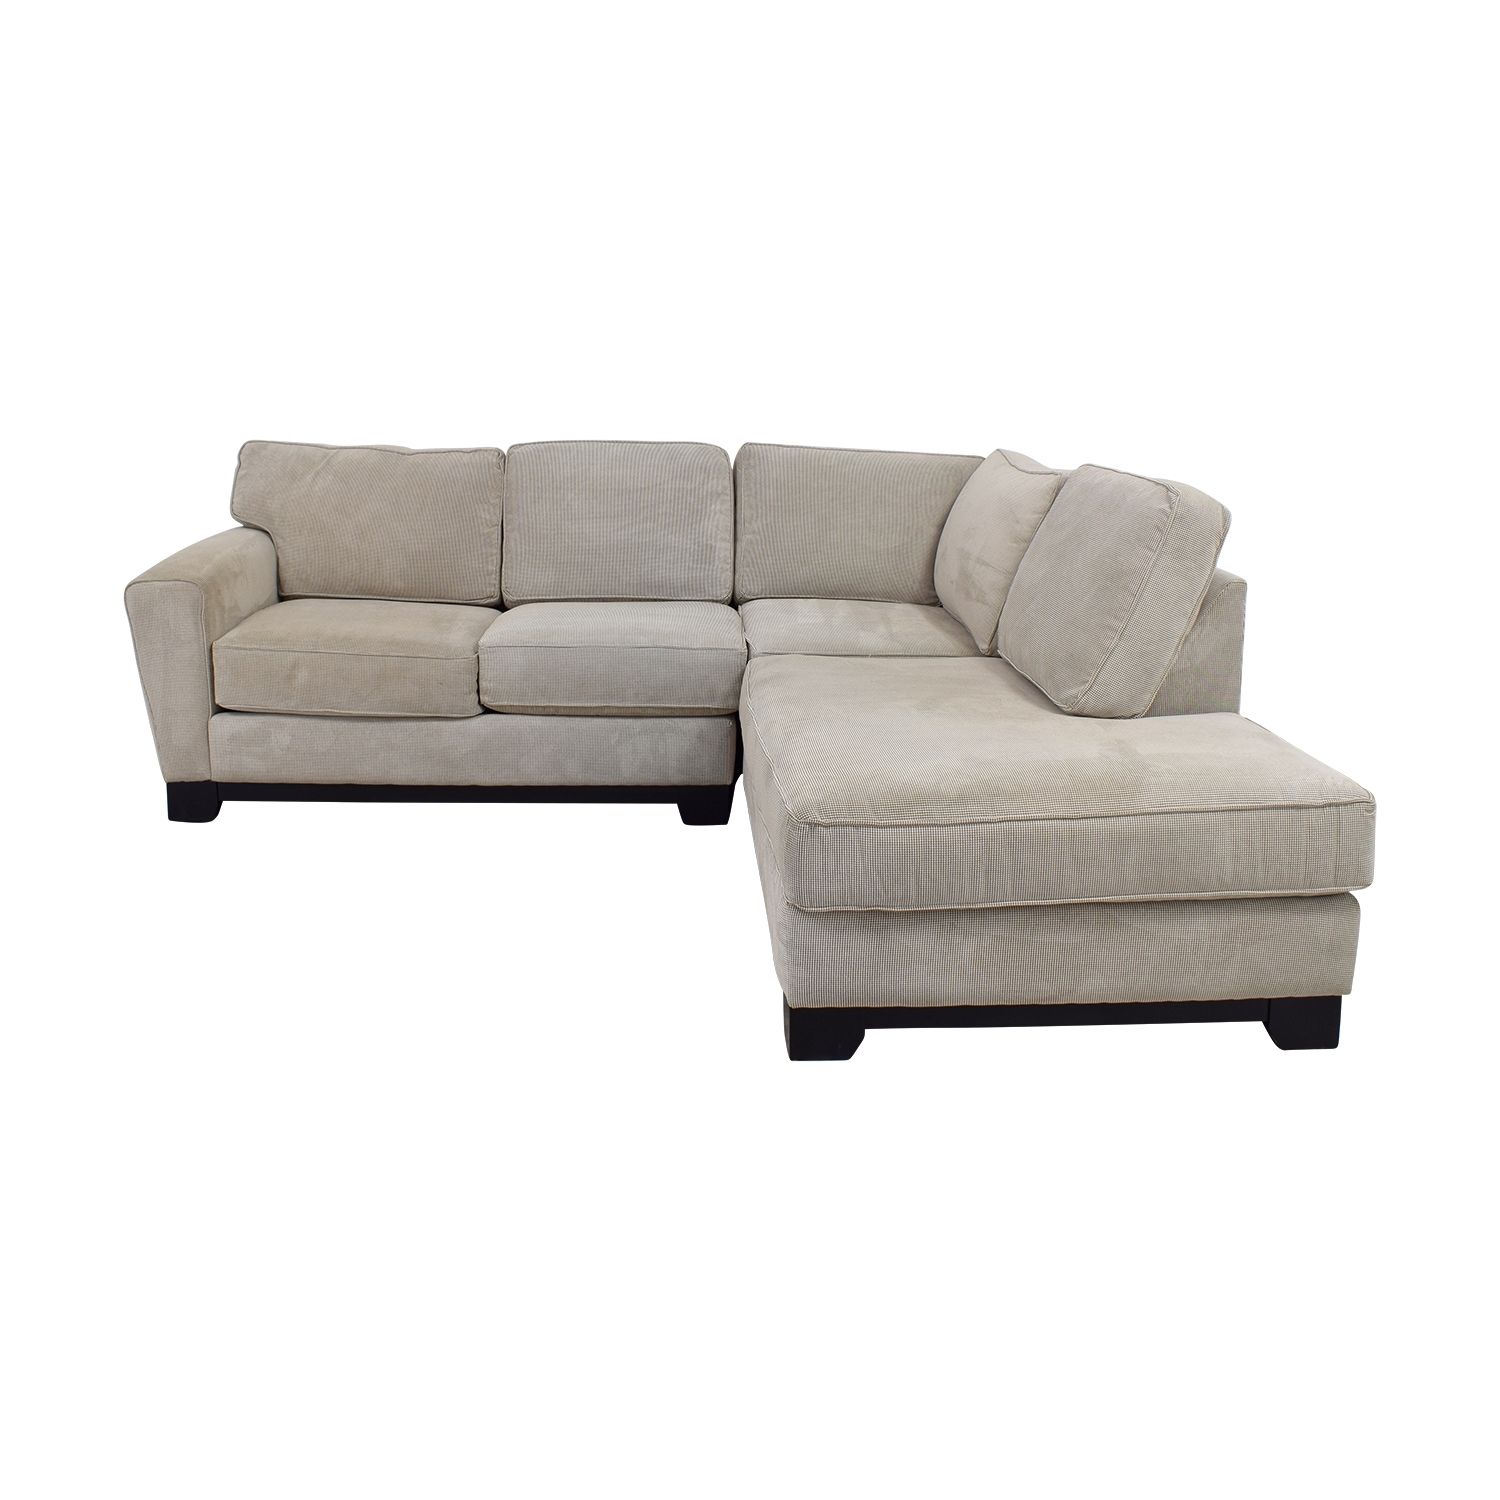 84% Off – Jordan's Furniture Jordan's Furniture Beige L Shaped In Jordans Sectional Sofas (View 2 of 10)